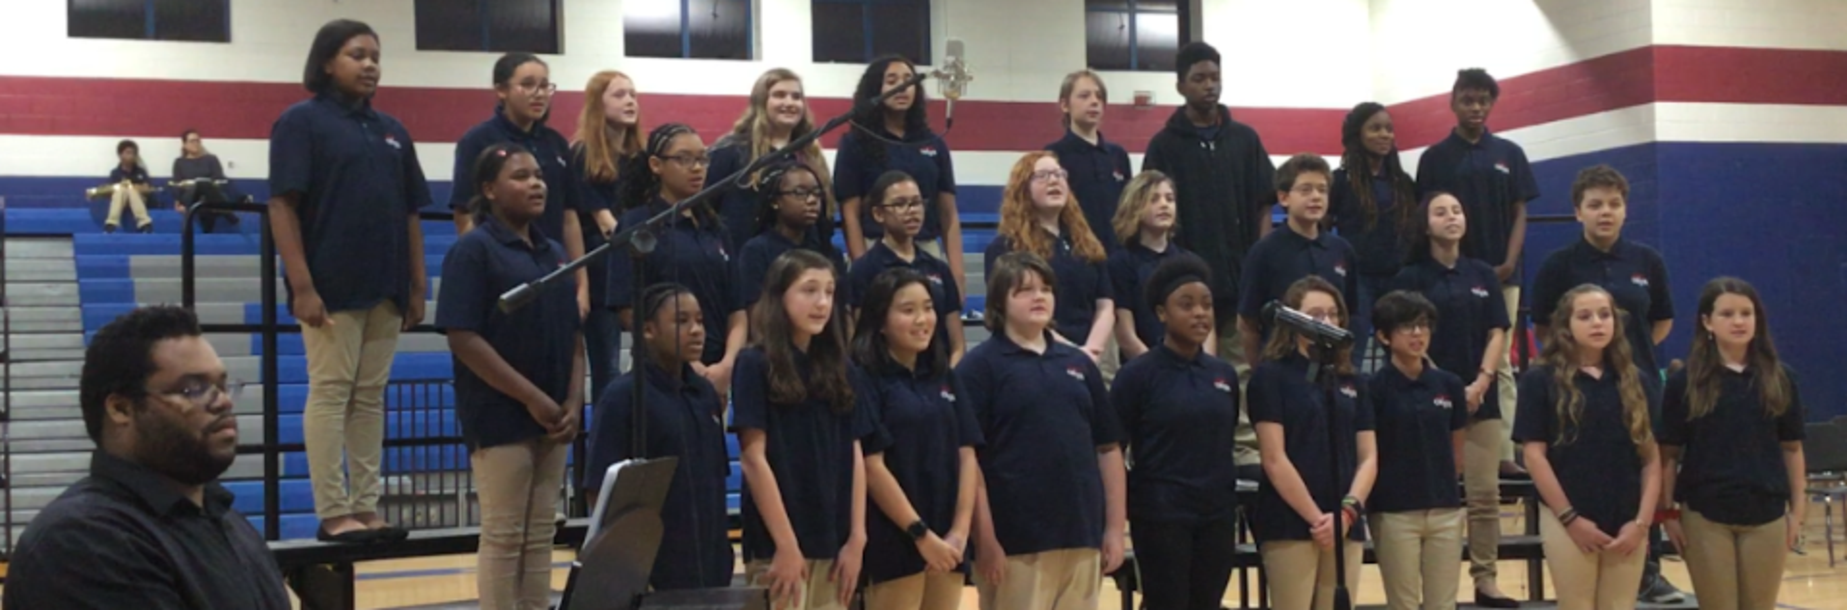 7th Grade Chorus Performs During Winter Fine Arts Program